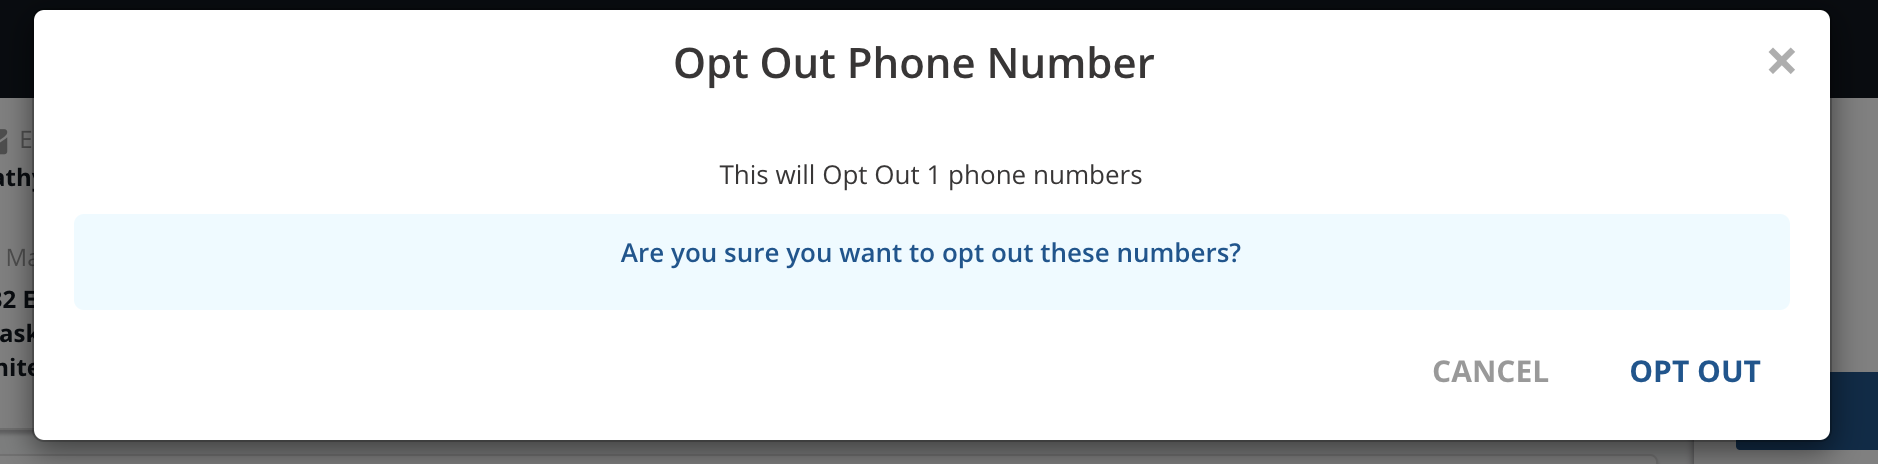 Opt out phone number